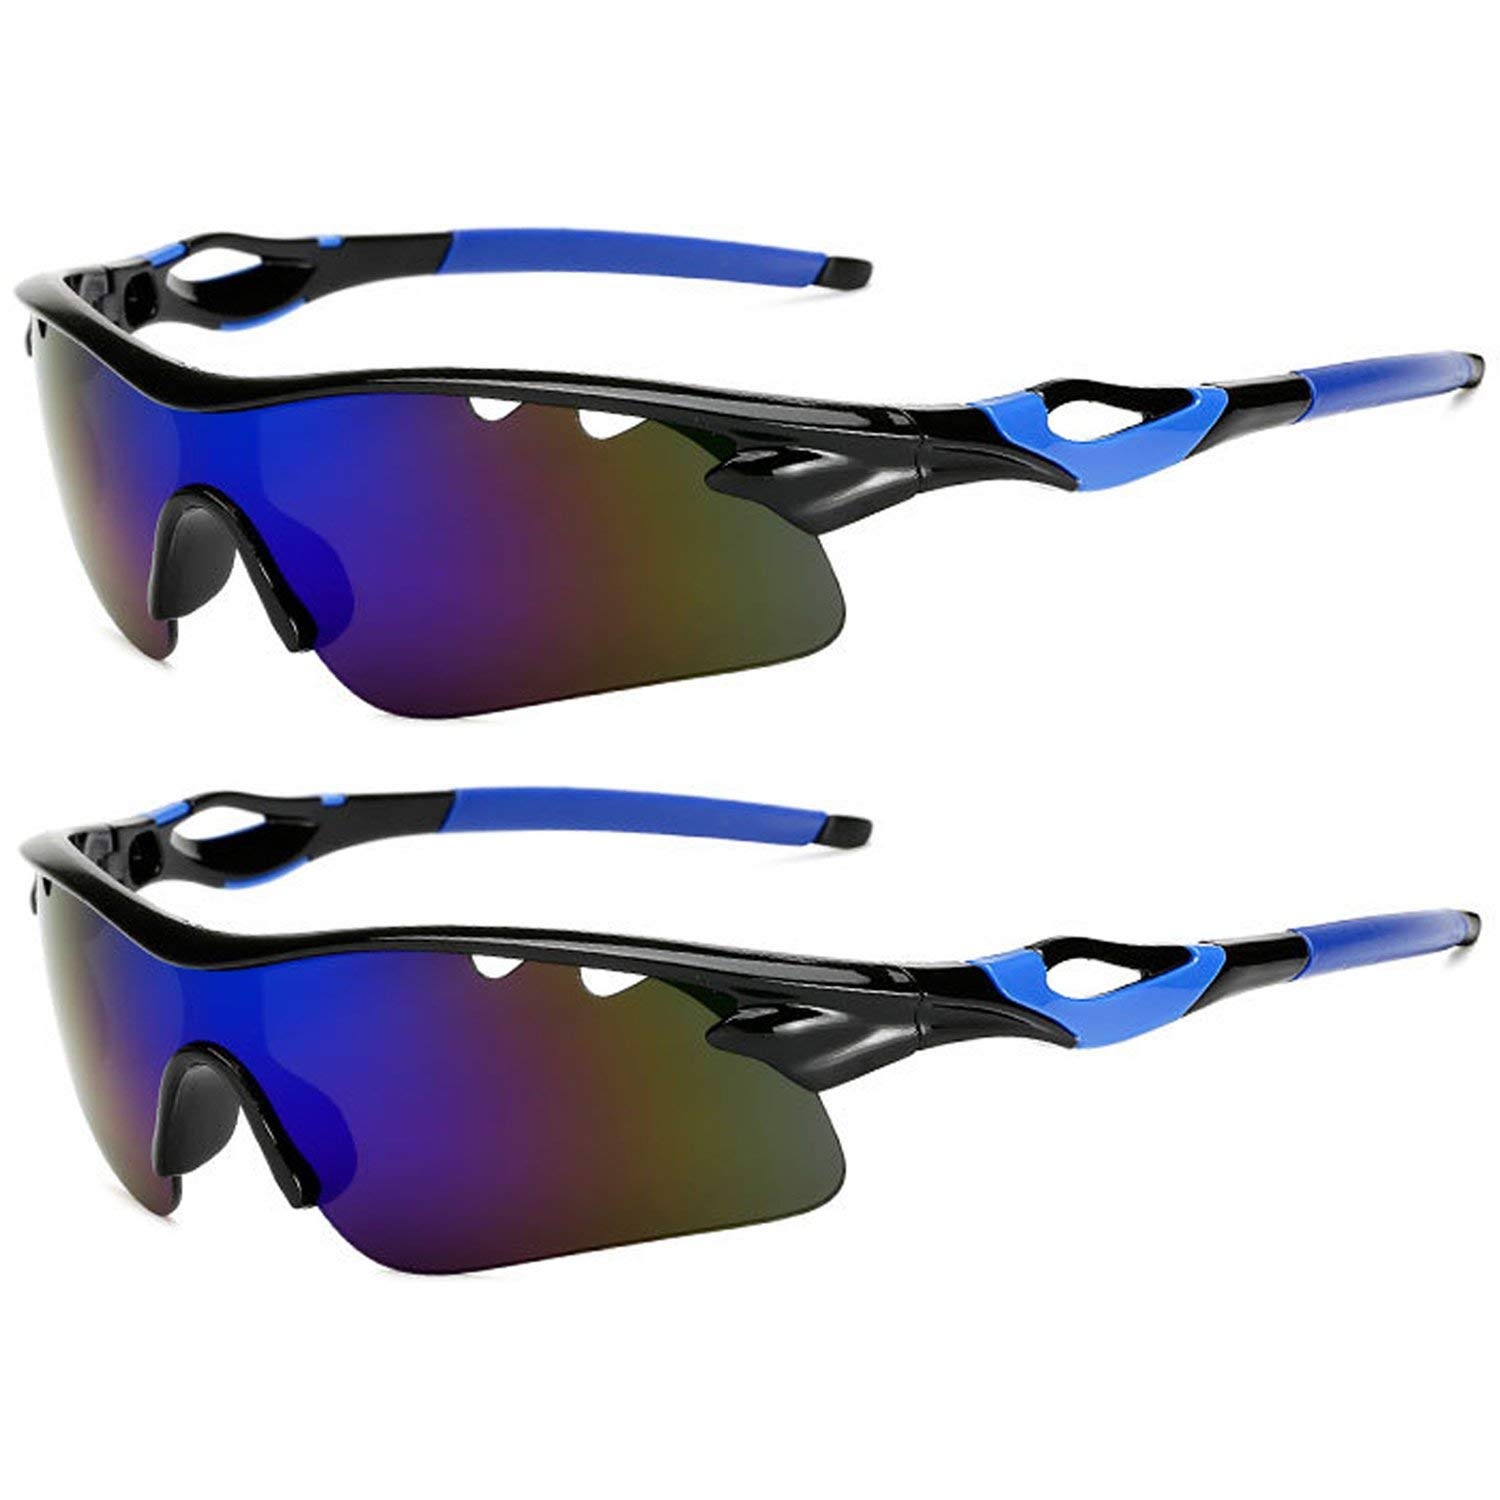 25e8d9487b3 Get Quotations · Polarized Sports Sunglasses Glare UV400 Protection HD  Night Vision for Motorcycle Riding Glasses (2 PACK